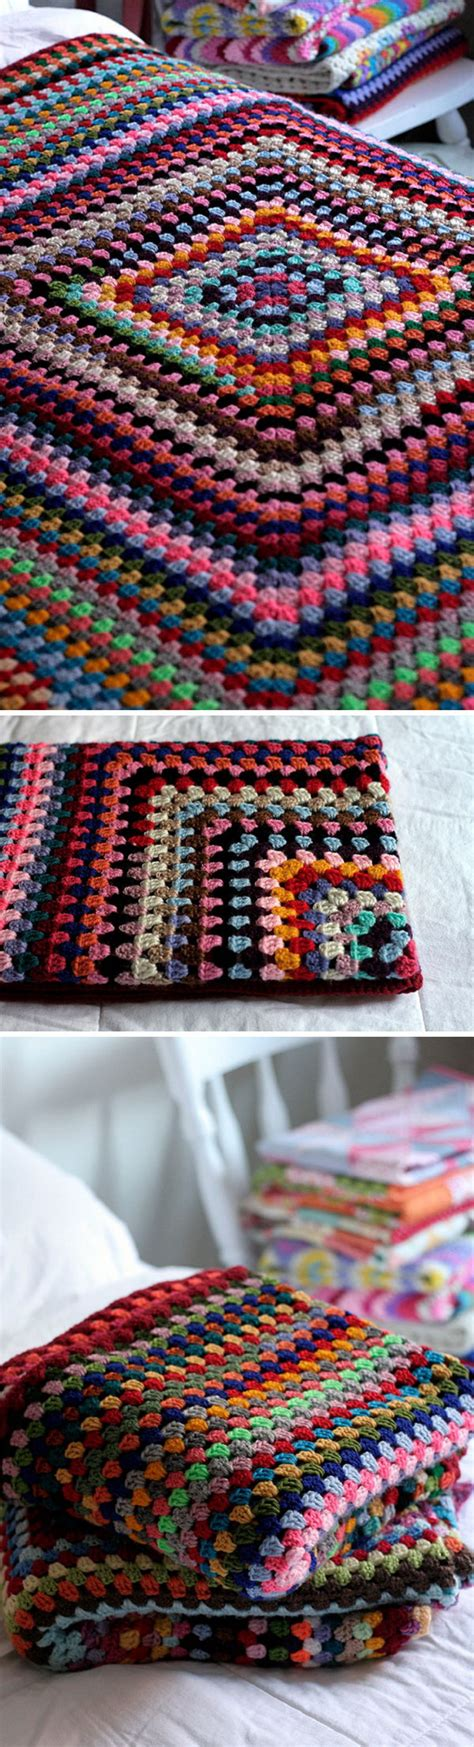 Easiest Way To Crochet A Blanket by 45 And Easy Crochet Blanket Patterns For Beginners